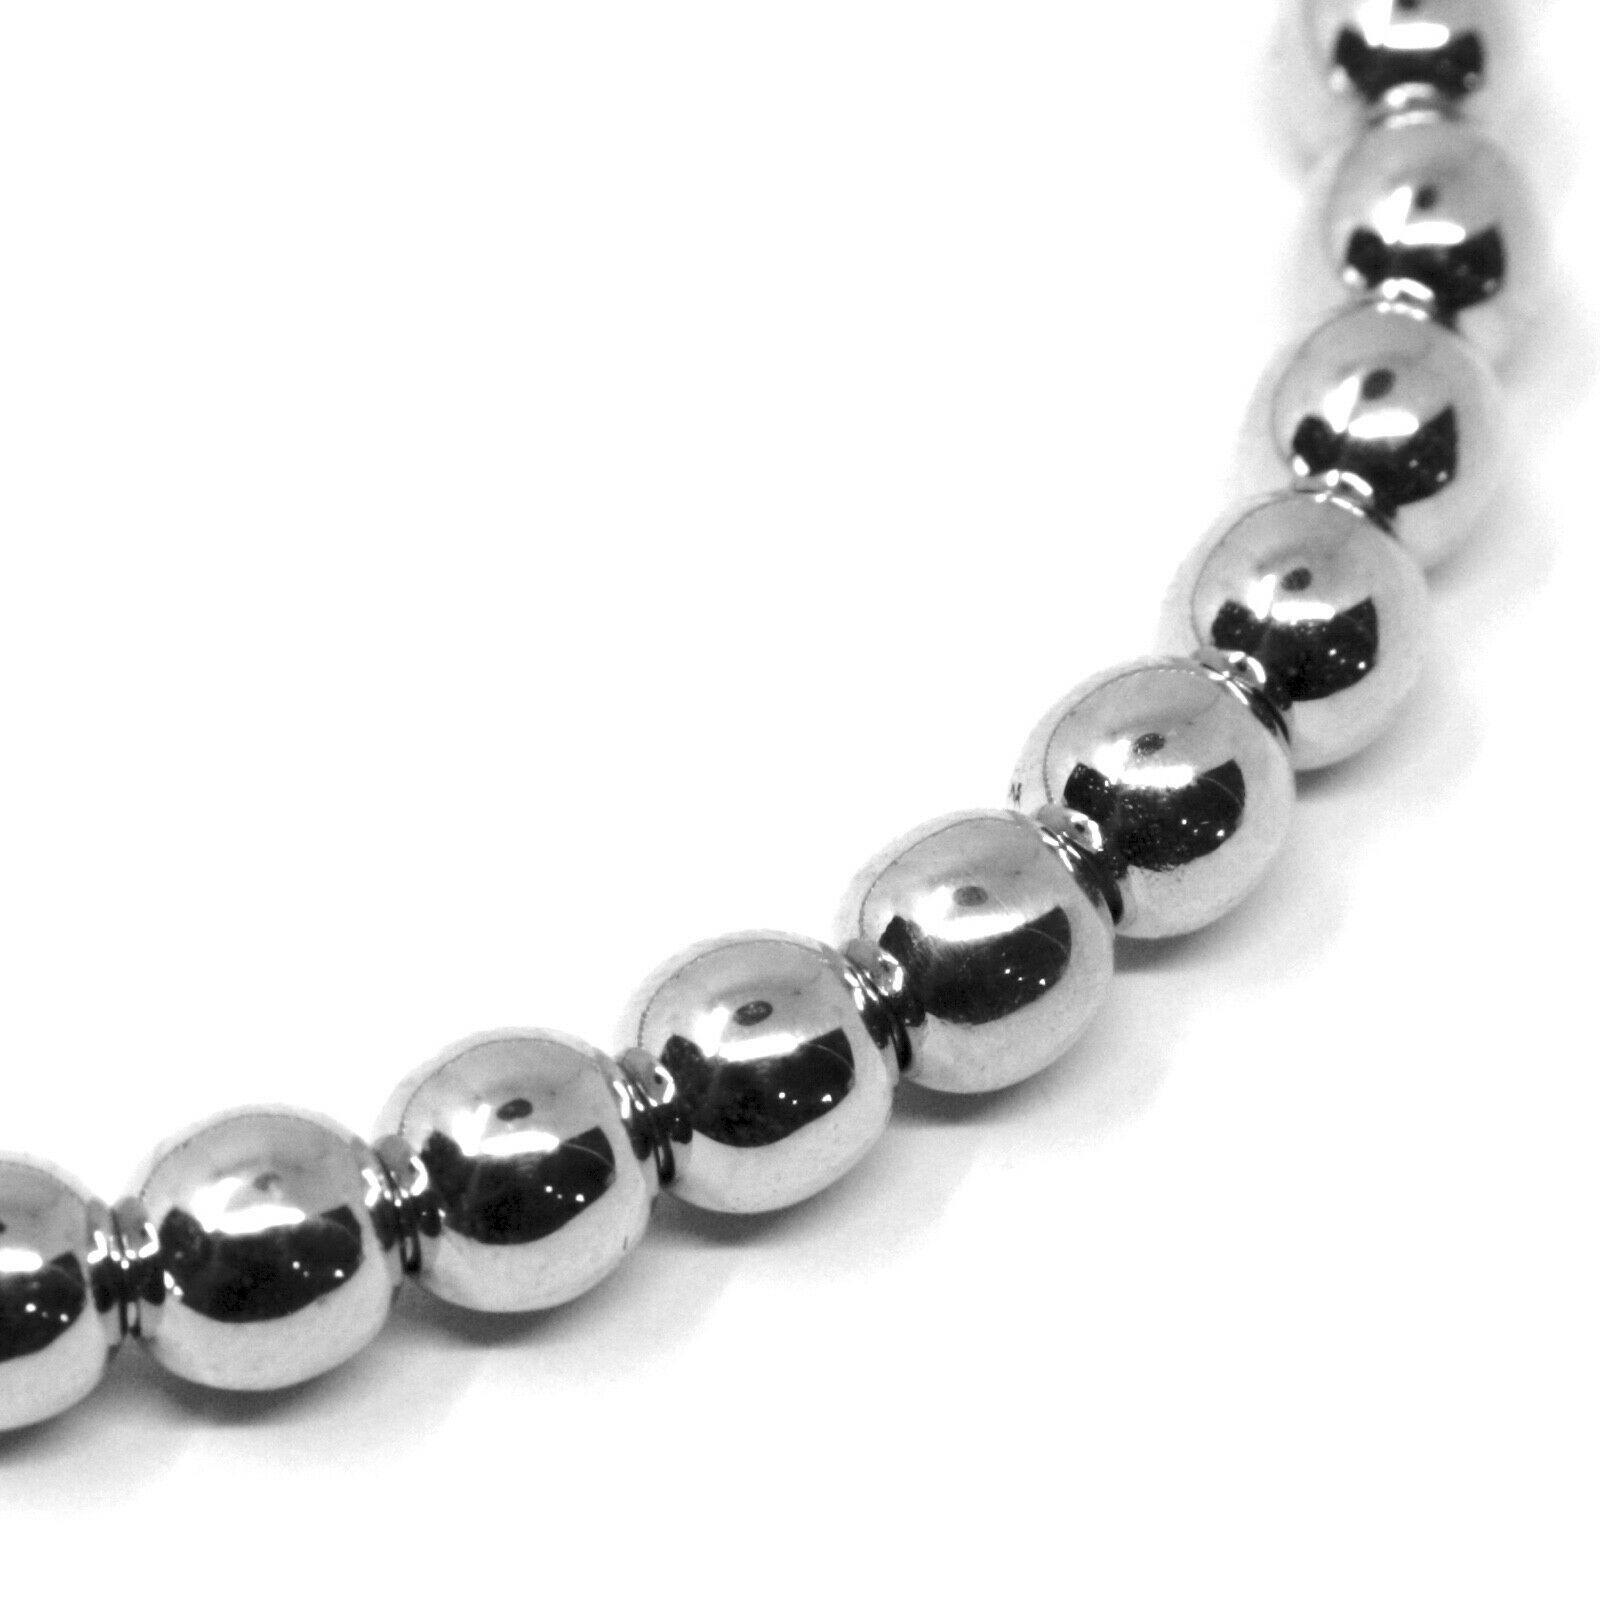 18K WHITE GOLD BRACELET, SEMIRIGID, ELASTIC, BIG 5 MM SMOOTH BALLS SPHERES